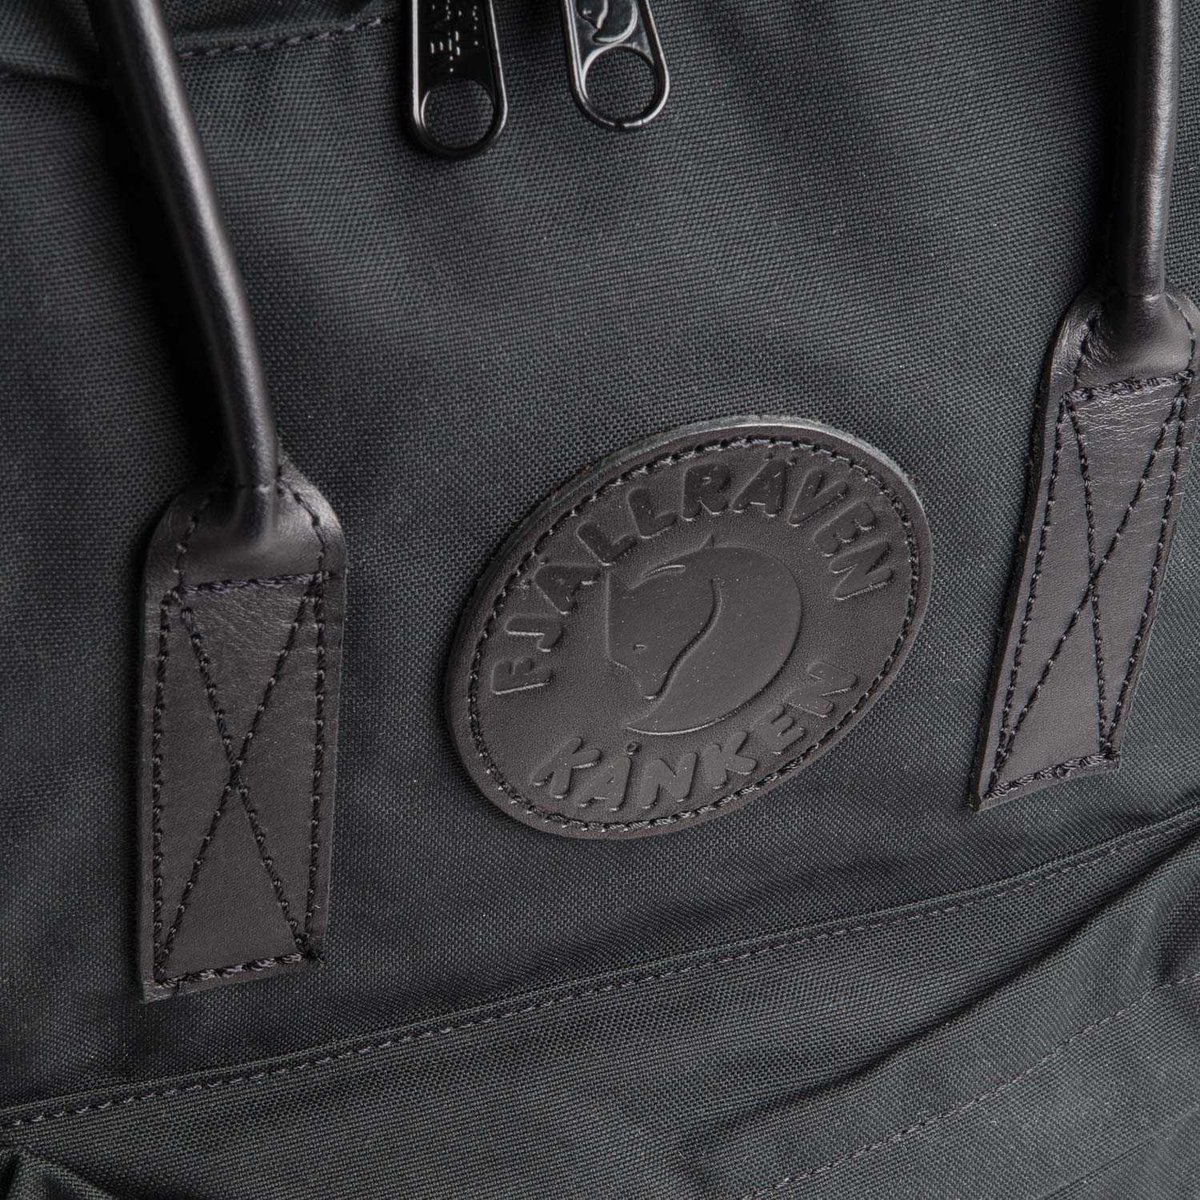 My Knken Bag On Twitter Its Here Kanken No 2 Laptop Black Fjallraven No2 Full Edition Limited Availability Dont Miss Out Https Tco Ftj2bpaw1q